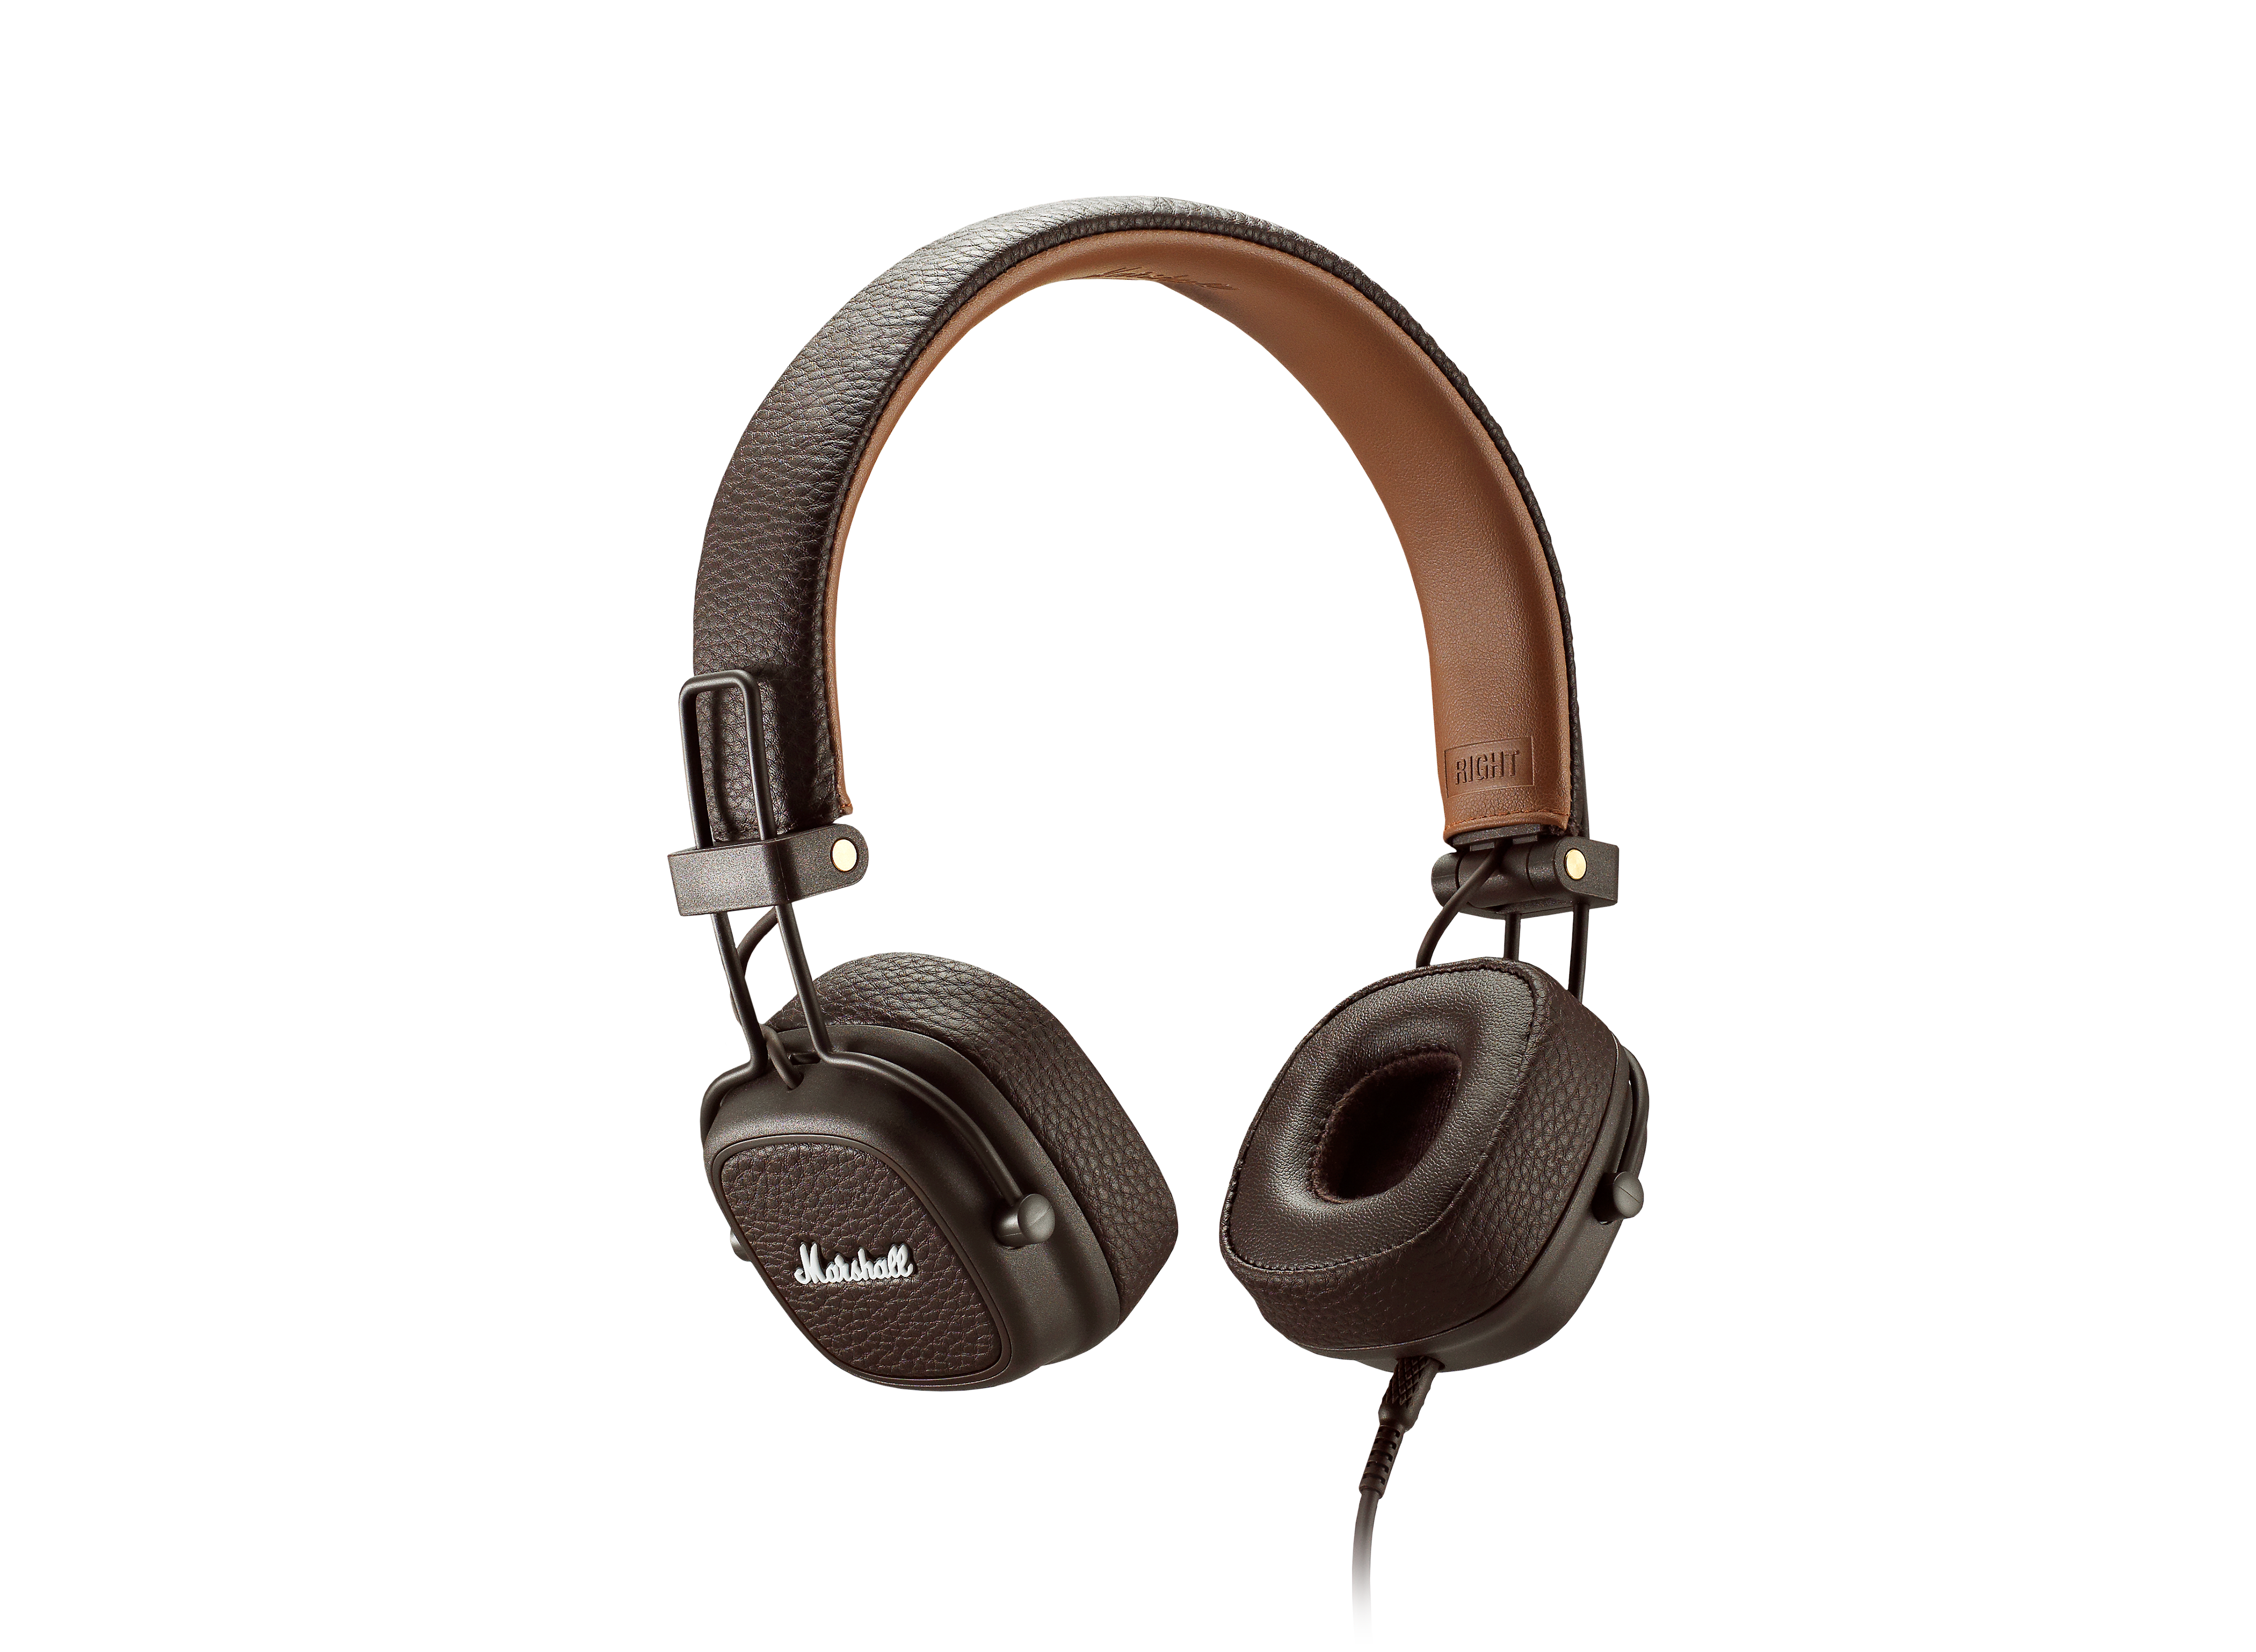 Marshall Major III Headphones (Black / White / Brown) with One Button Remote with Microphone Collapsible Design Ergonomic Fit Detaachable 3.5mm Cord